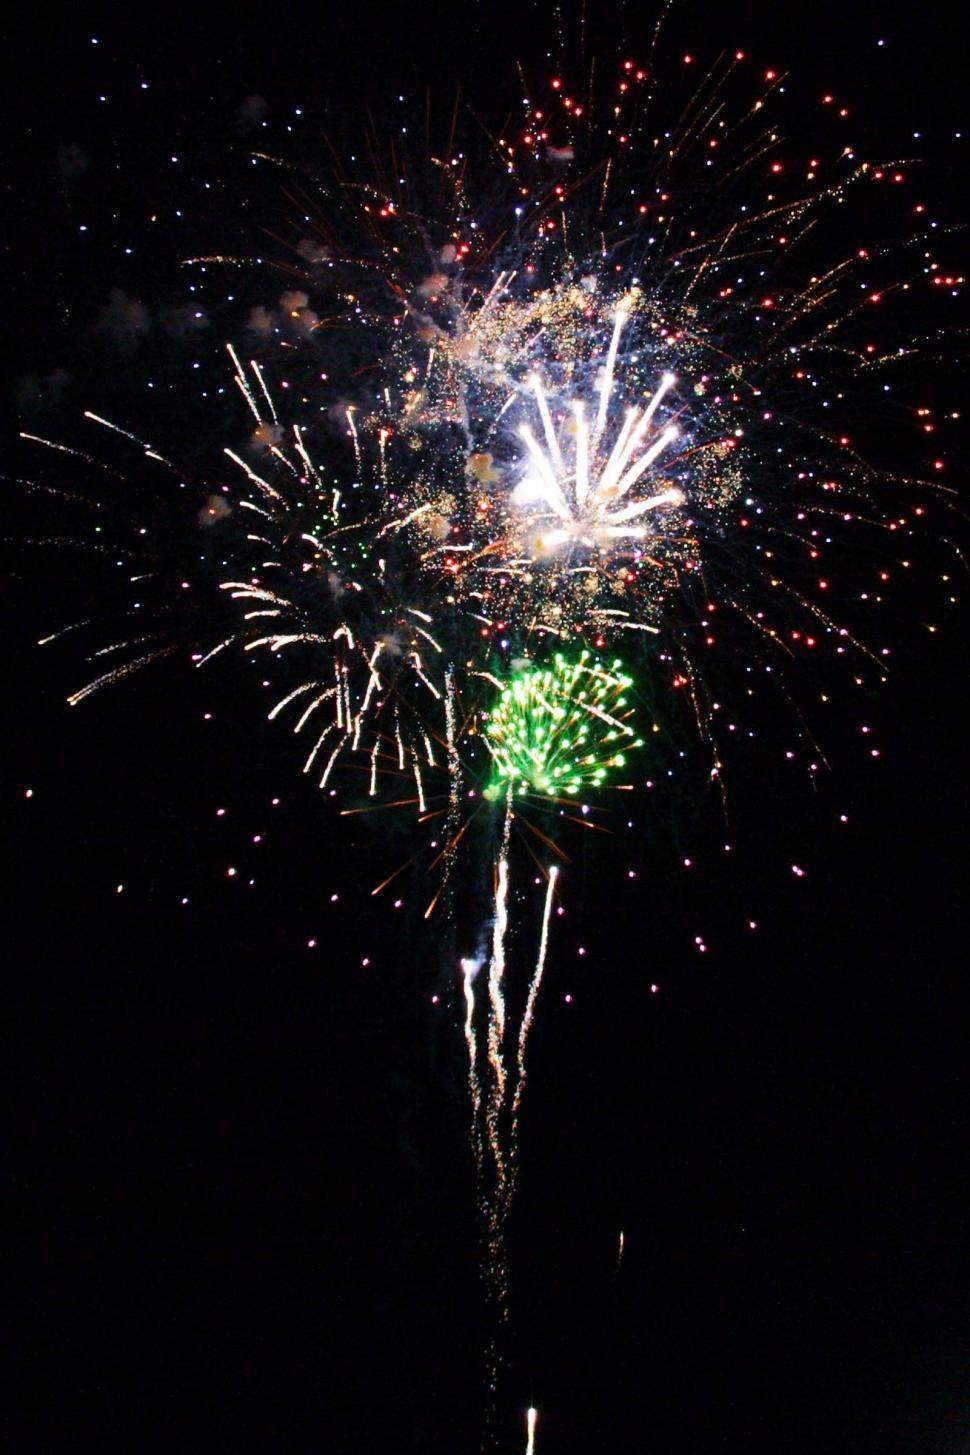 Download Free Stock HD Photo of Fireworks explode in night sky Online